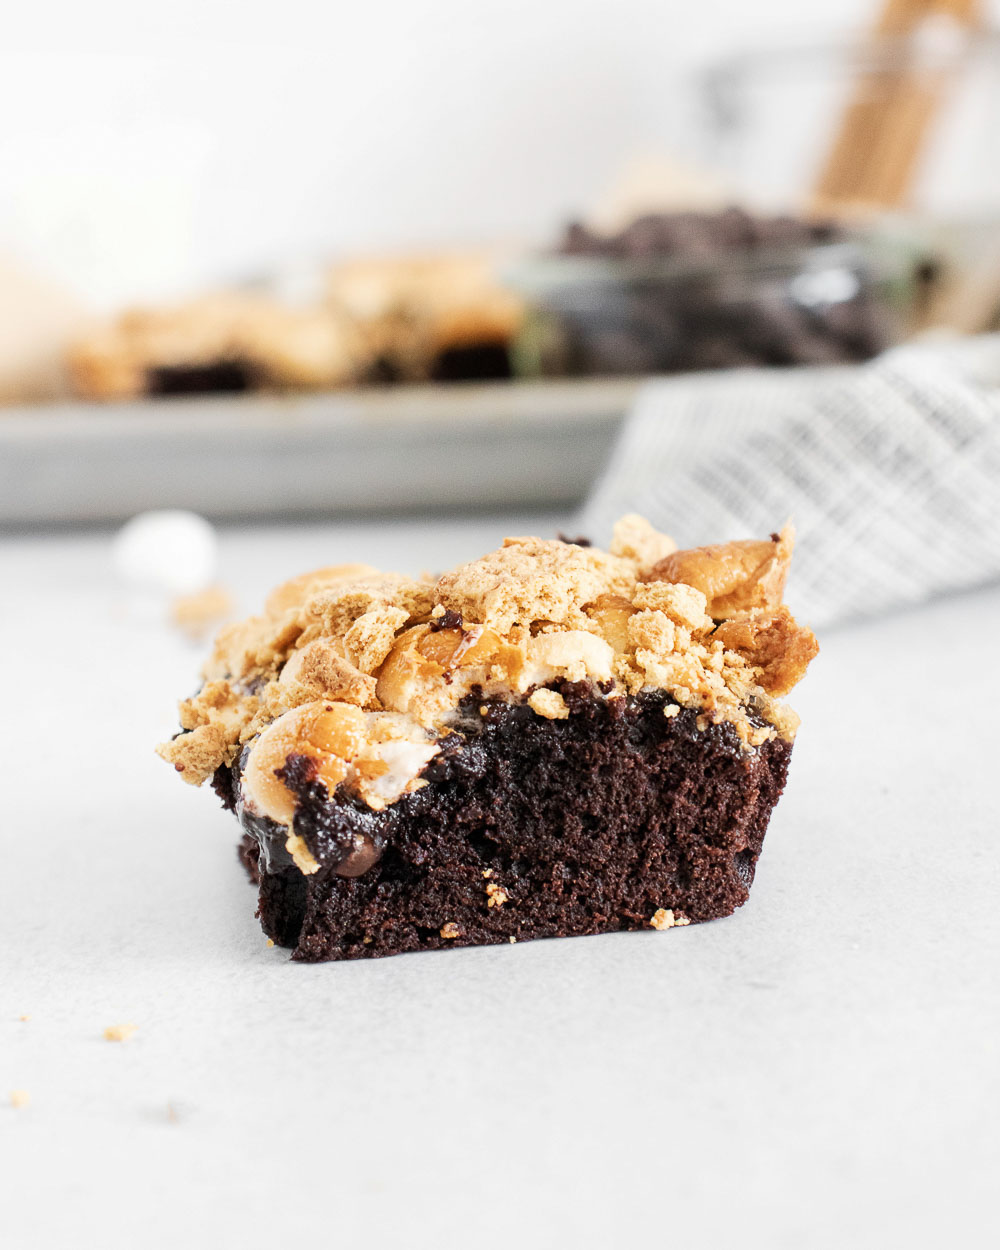 These easy and best Smores Brownies, topped with a crunchy streusel topping, are fudgy, chocolatey, gooey, and super delicious! Easy to make, portable and they can be frozen too.